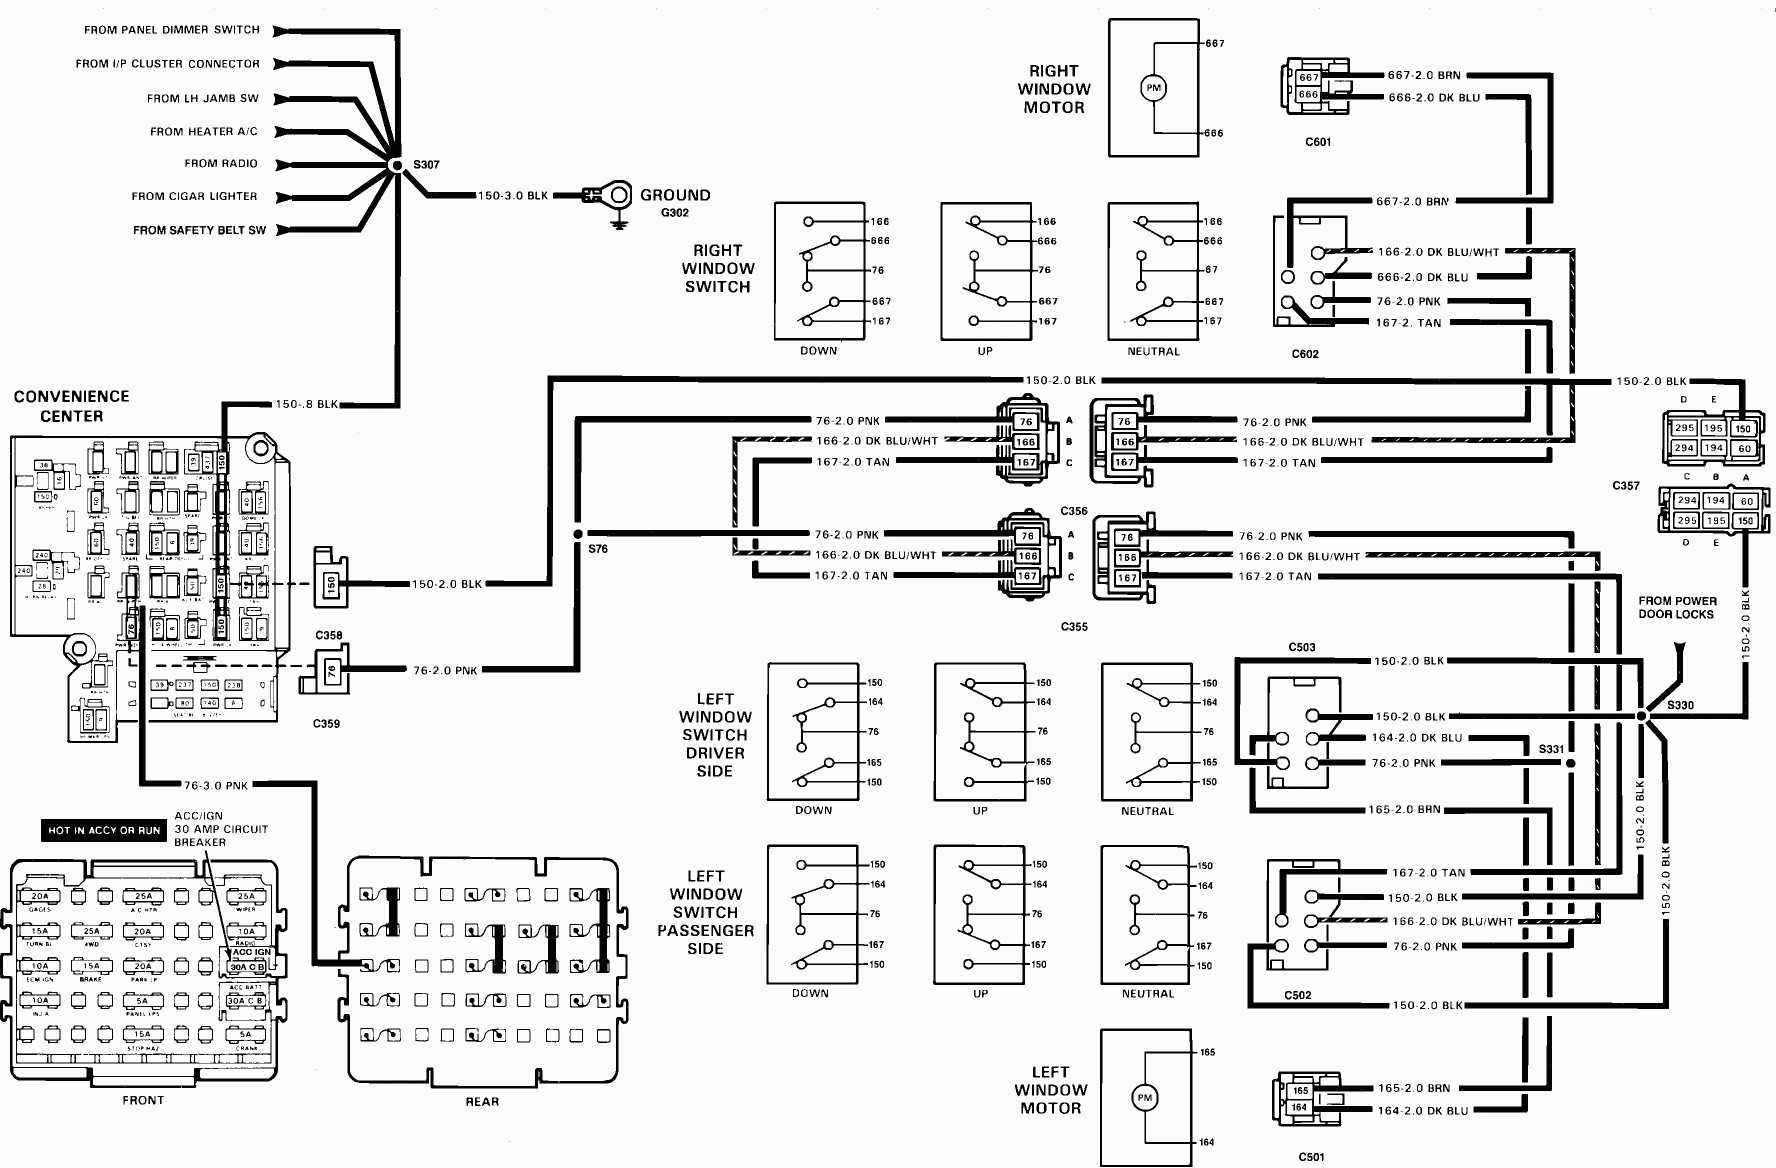 2000 Suburban Power Window Wiring Diagram - Diagram Design Sources  layout-gaudy - layout-gaudy.lesmalinspres.fr | Window Wiring Diagram For 2001 Chevy Silverado Hd |  | layout-gaudy.lesmalinspres.fr